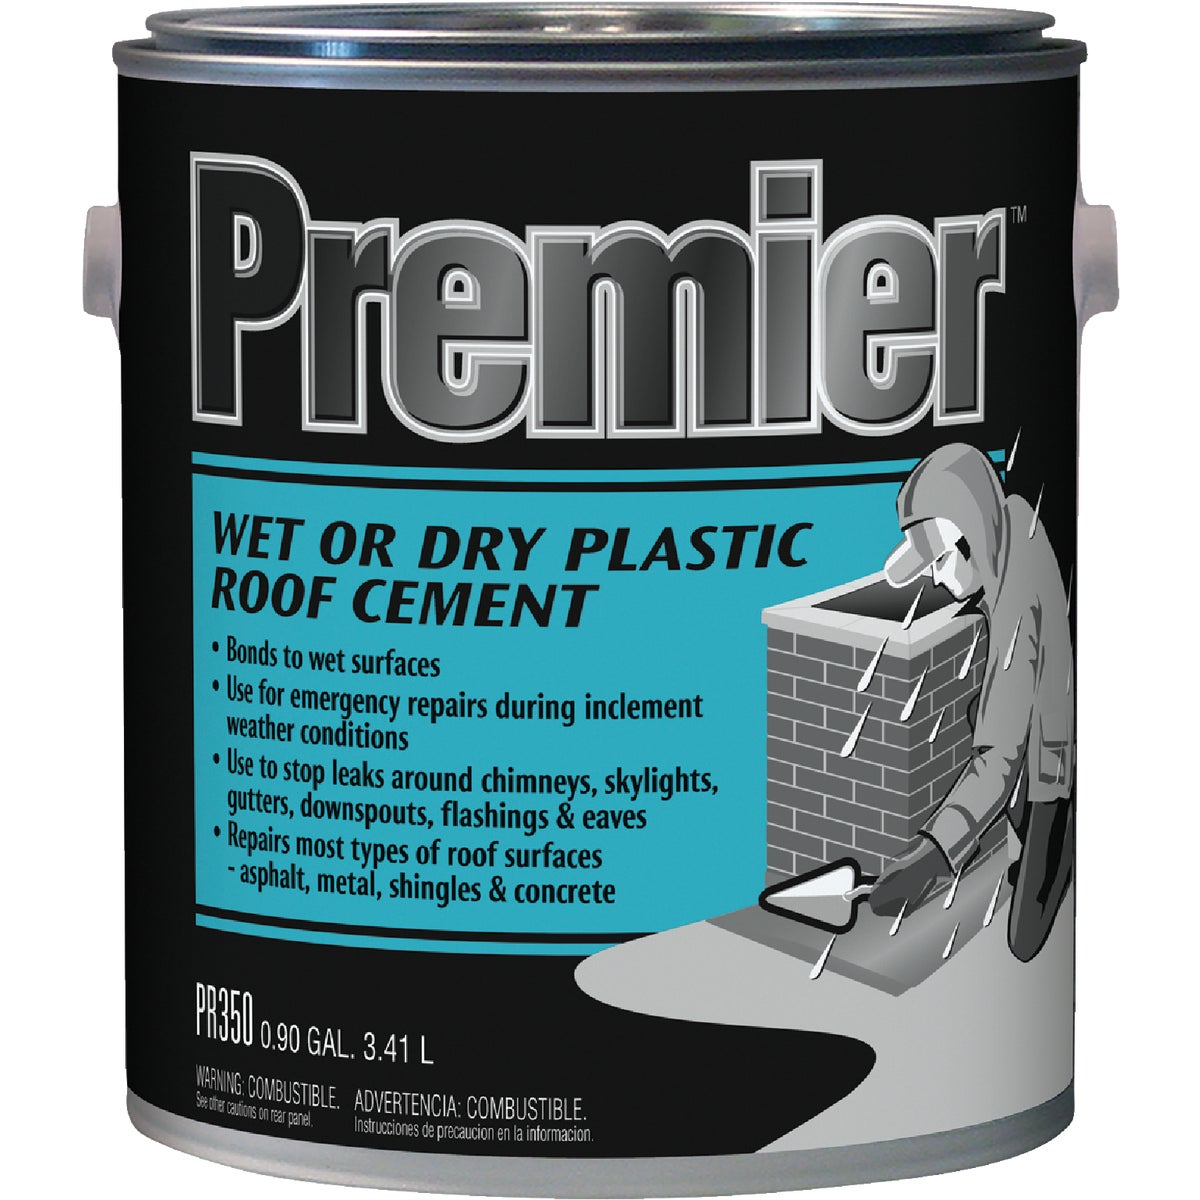 GL W/D PLASTIC RF CEMENT - DI150042 by Henry Company